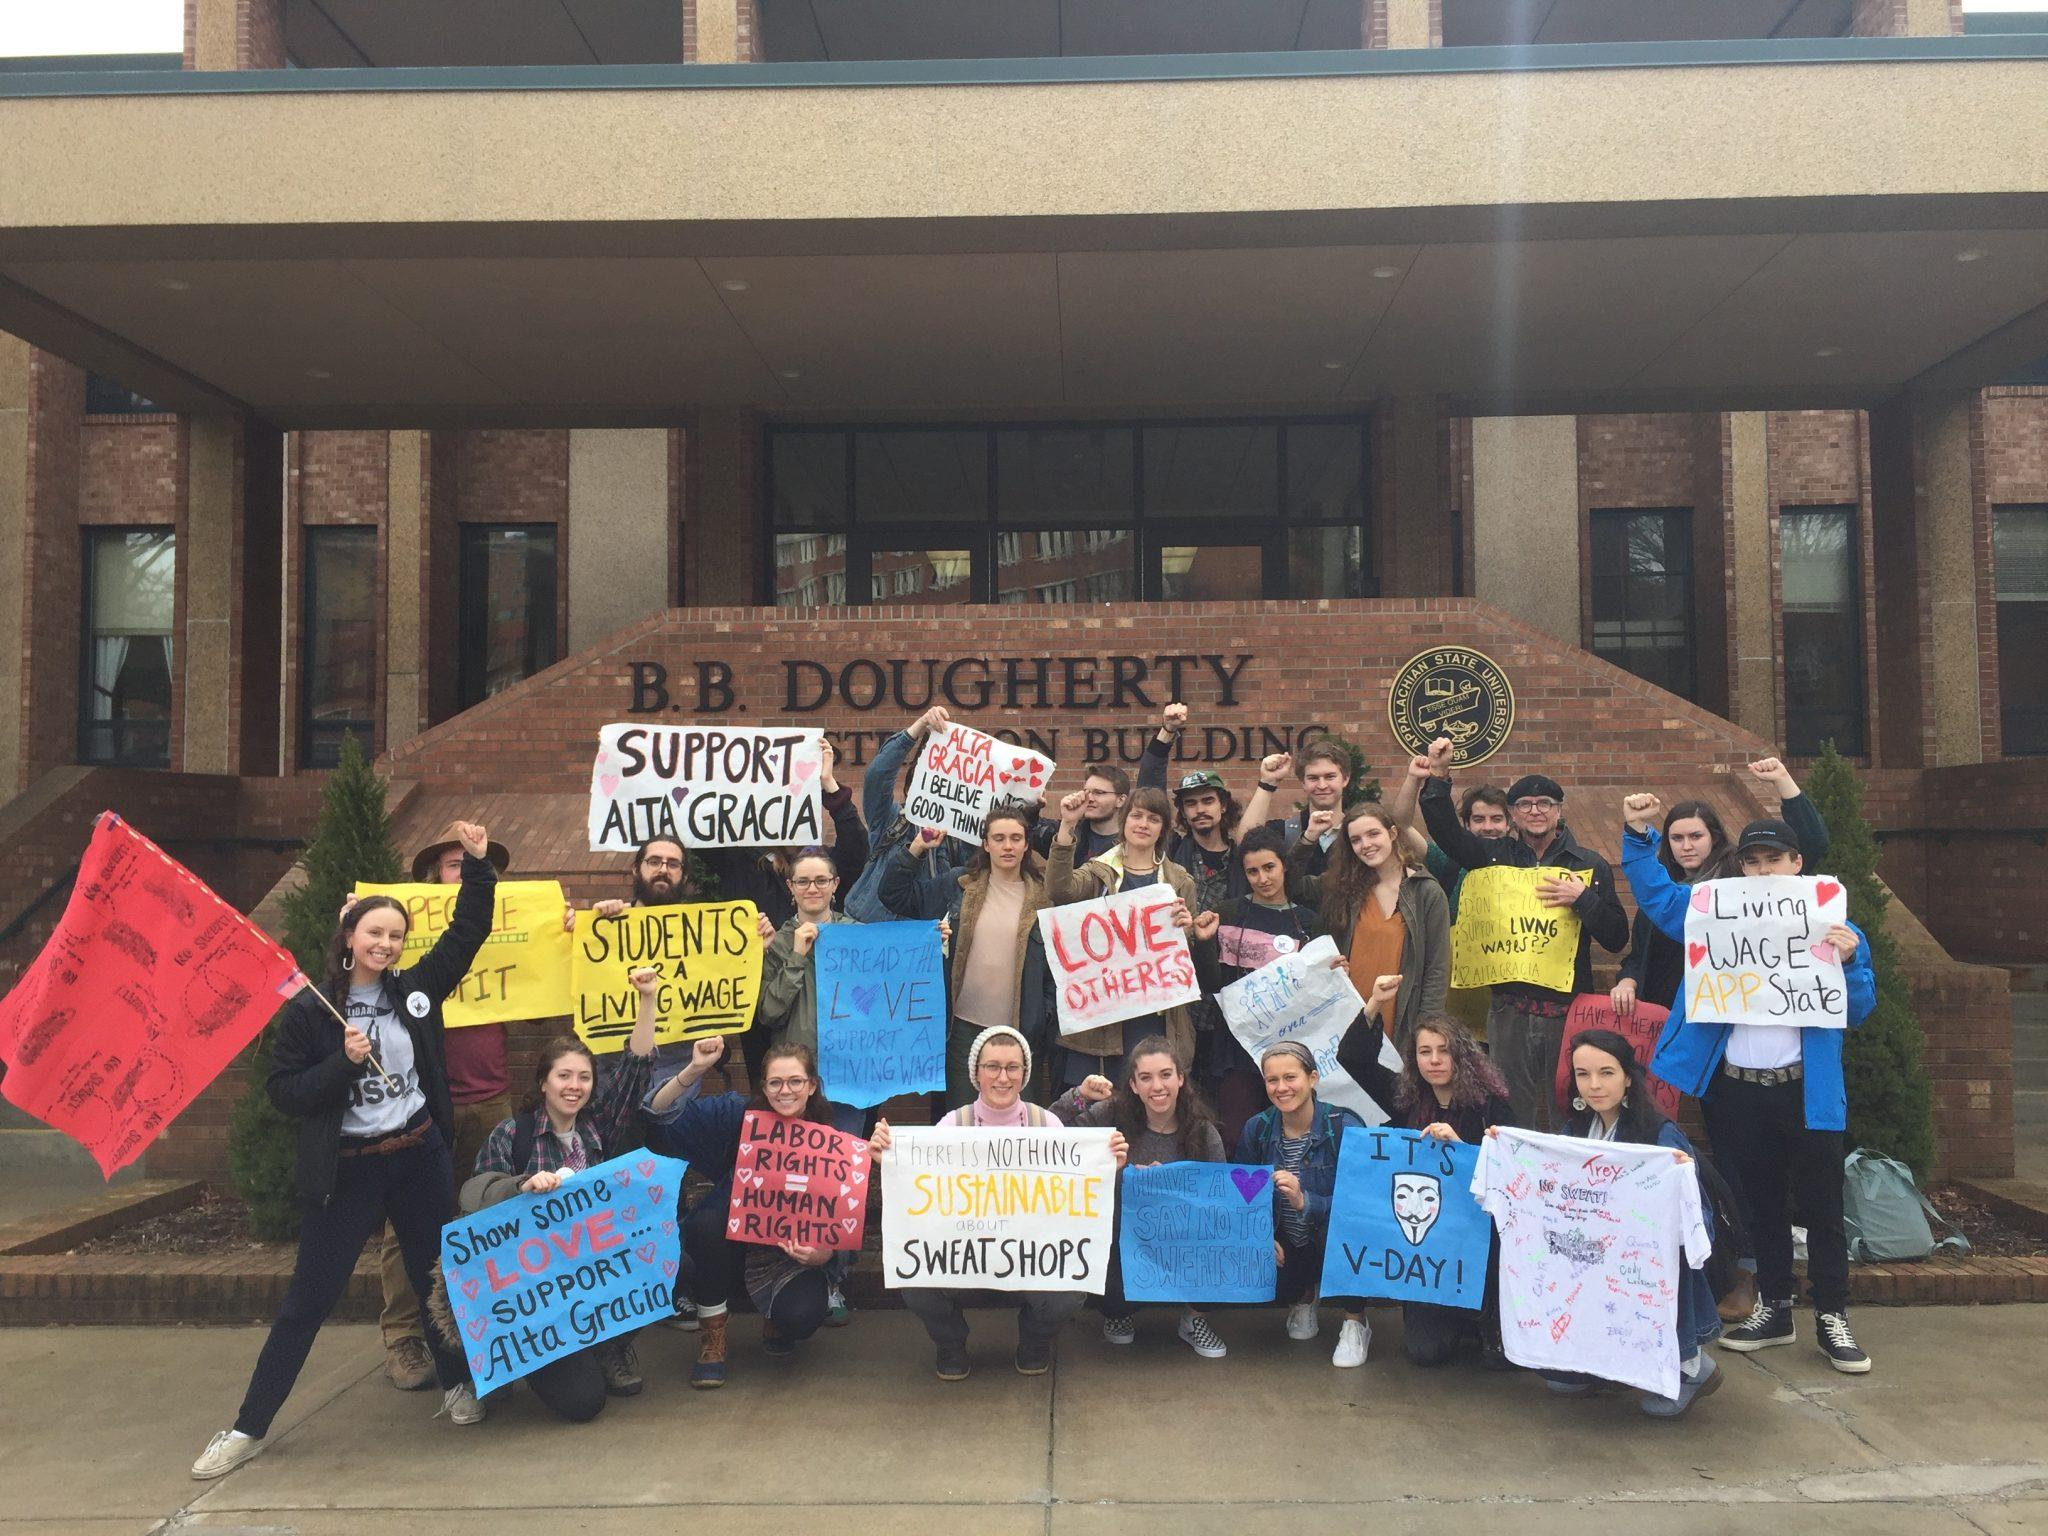 Members of USAS pose with painted signs and banners promoting Alta Gracia outside of B.B. Dougherty, where the chancellor's office is located.